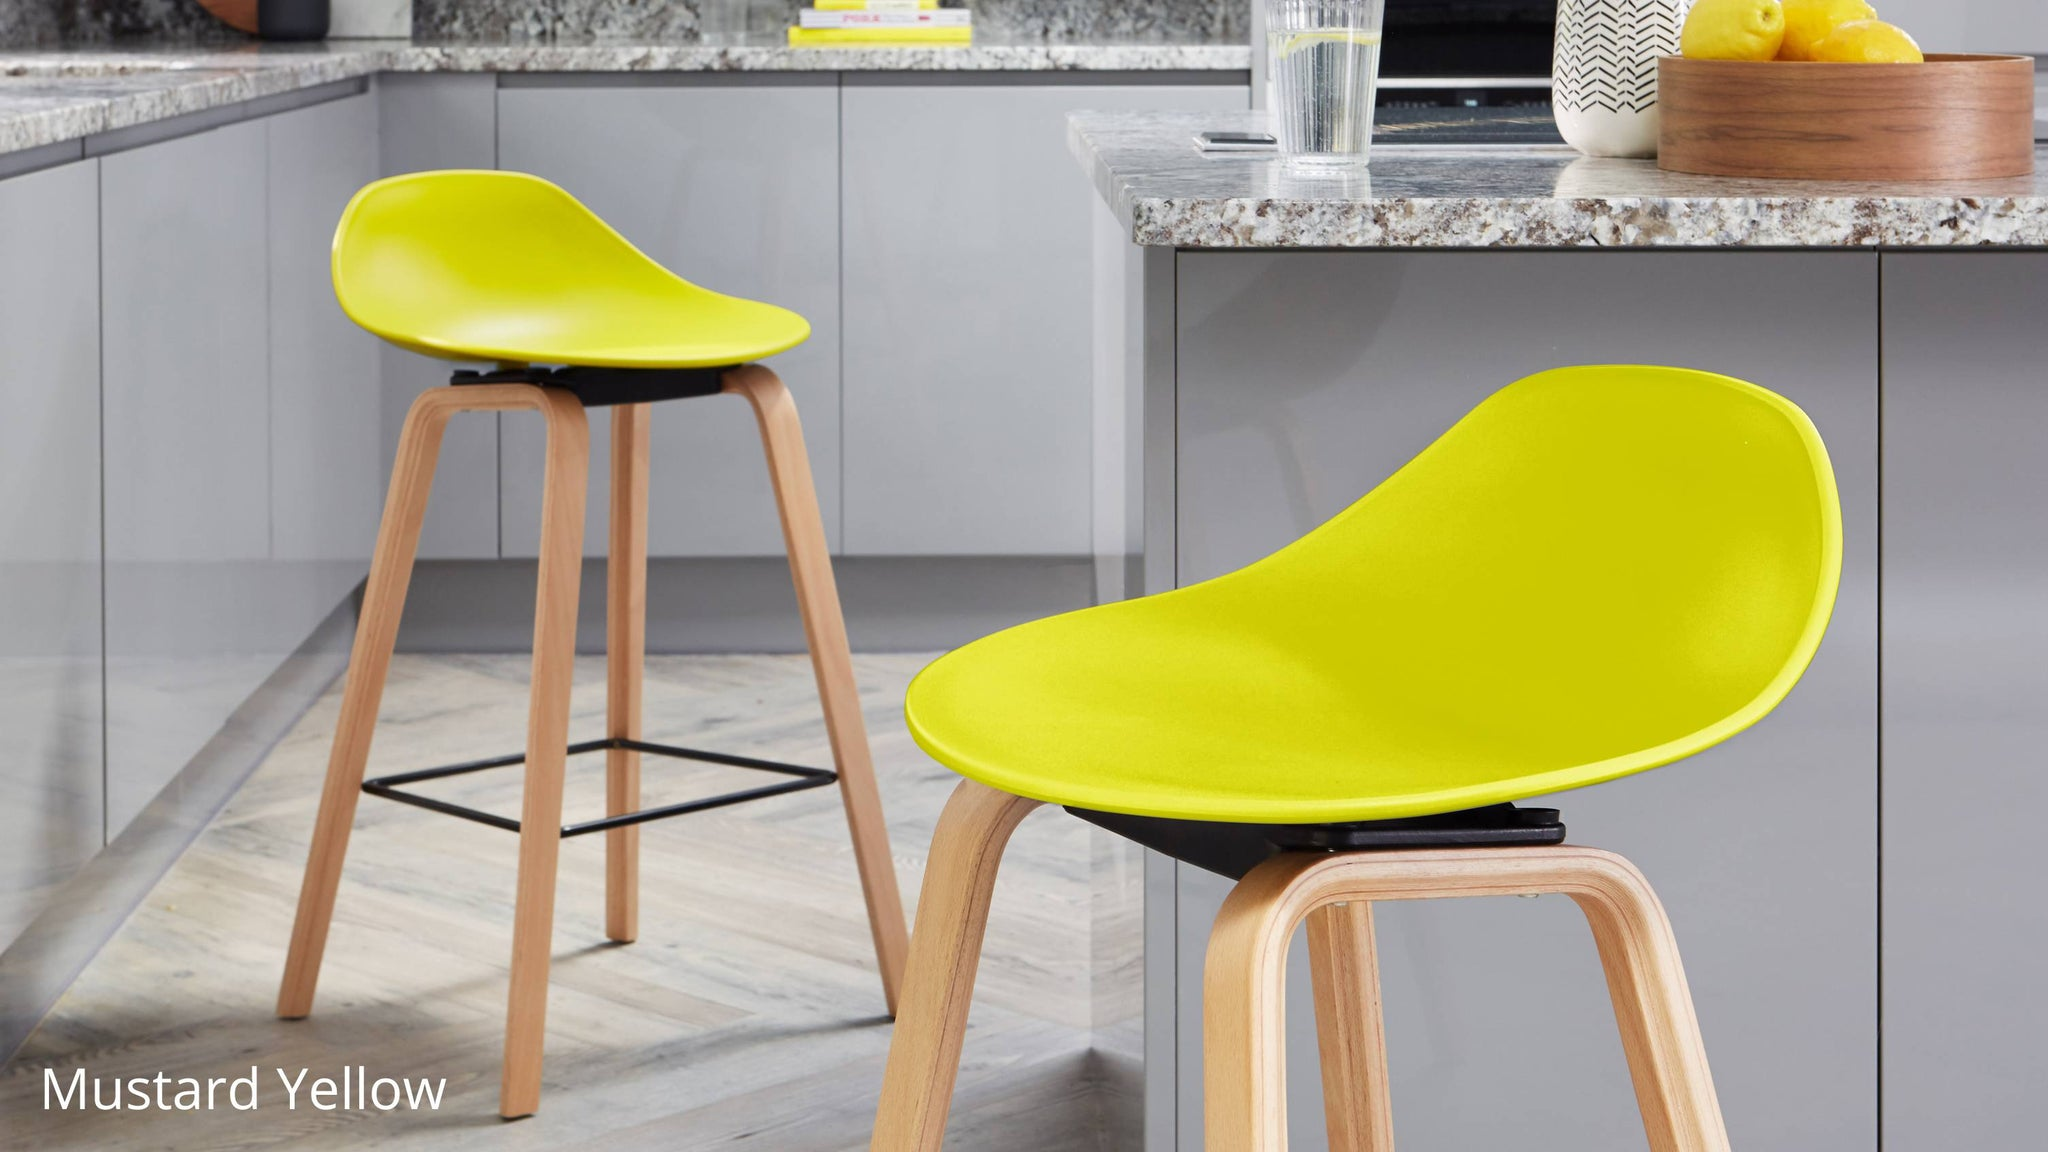 Buy comfortable plastic bar stools